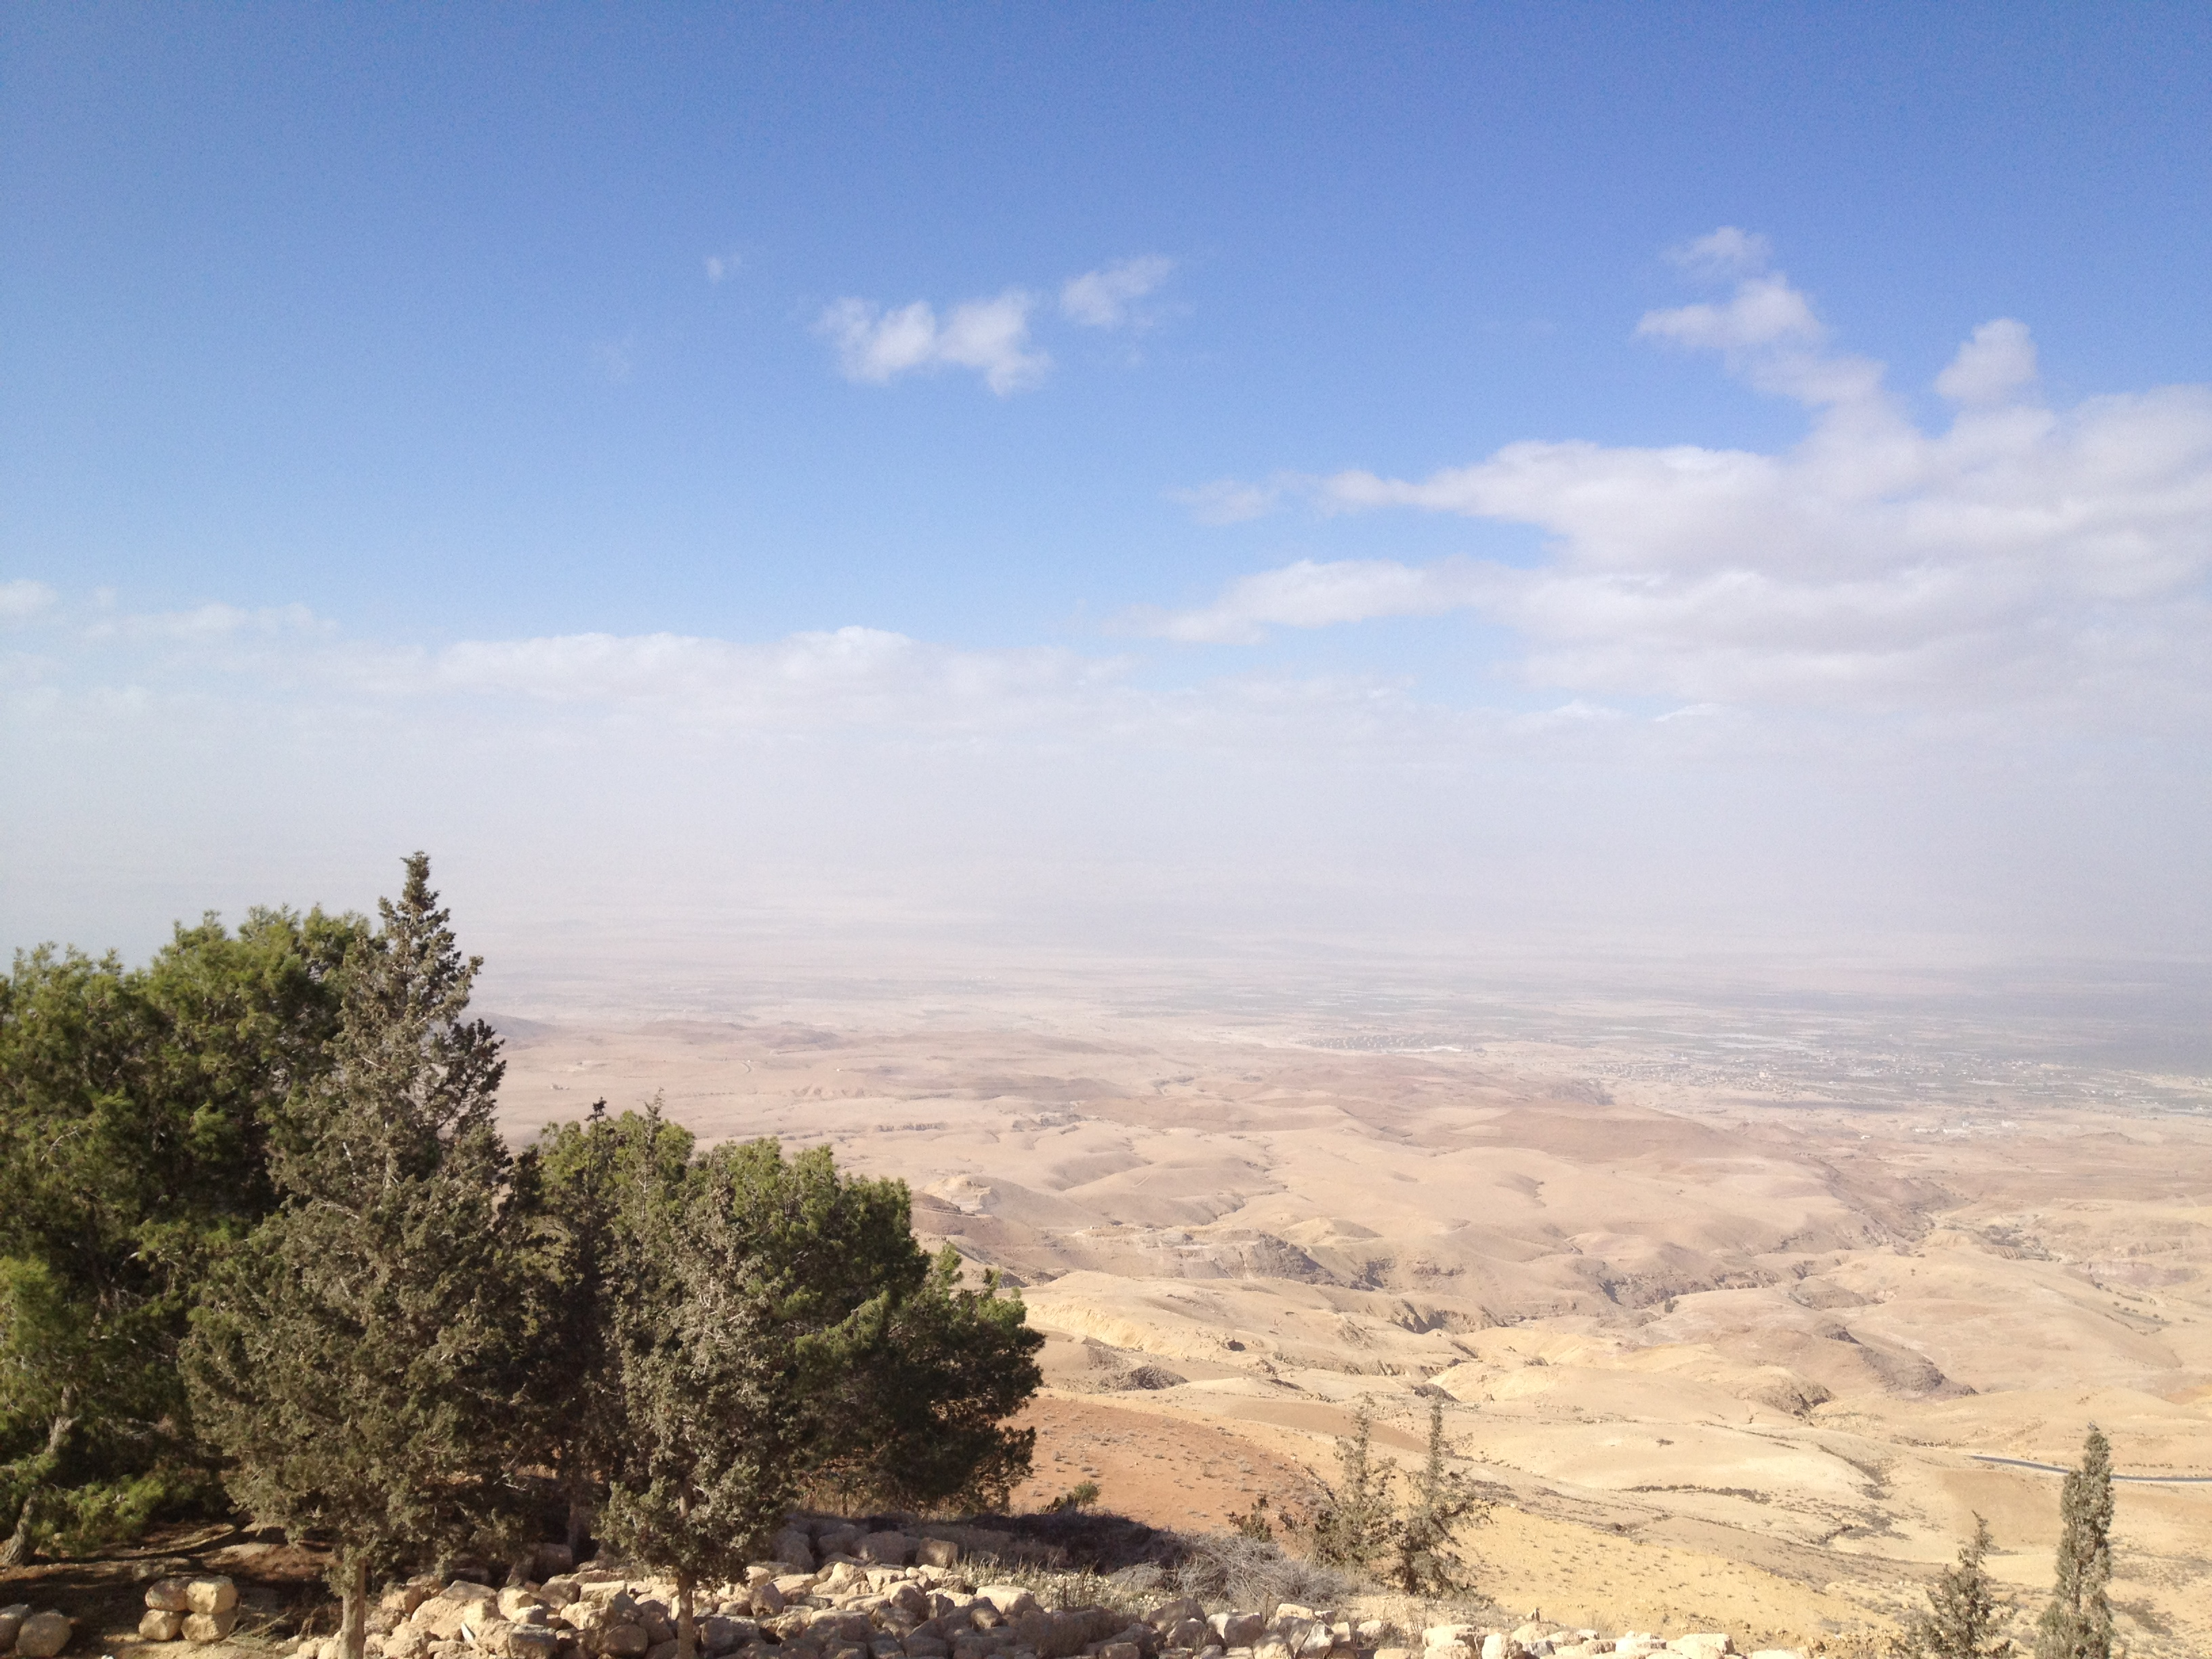 Tell Hesban Mt Nebo, Taking in the view from Mount Nebo, Jordan - The Inside Track